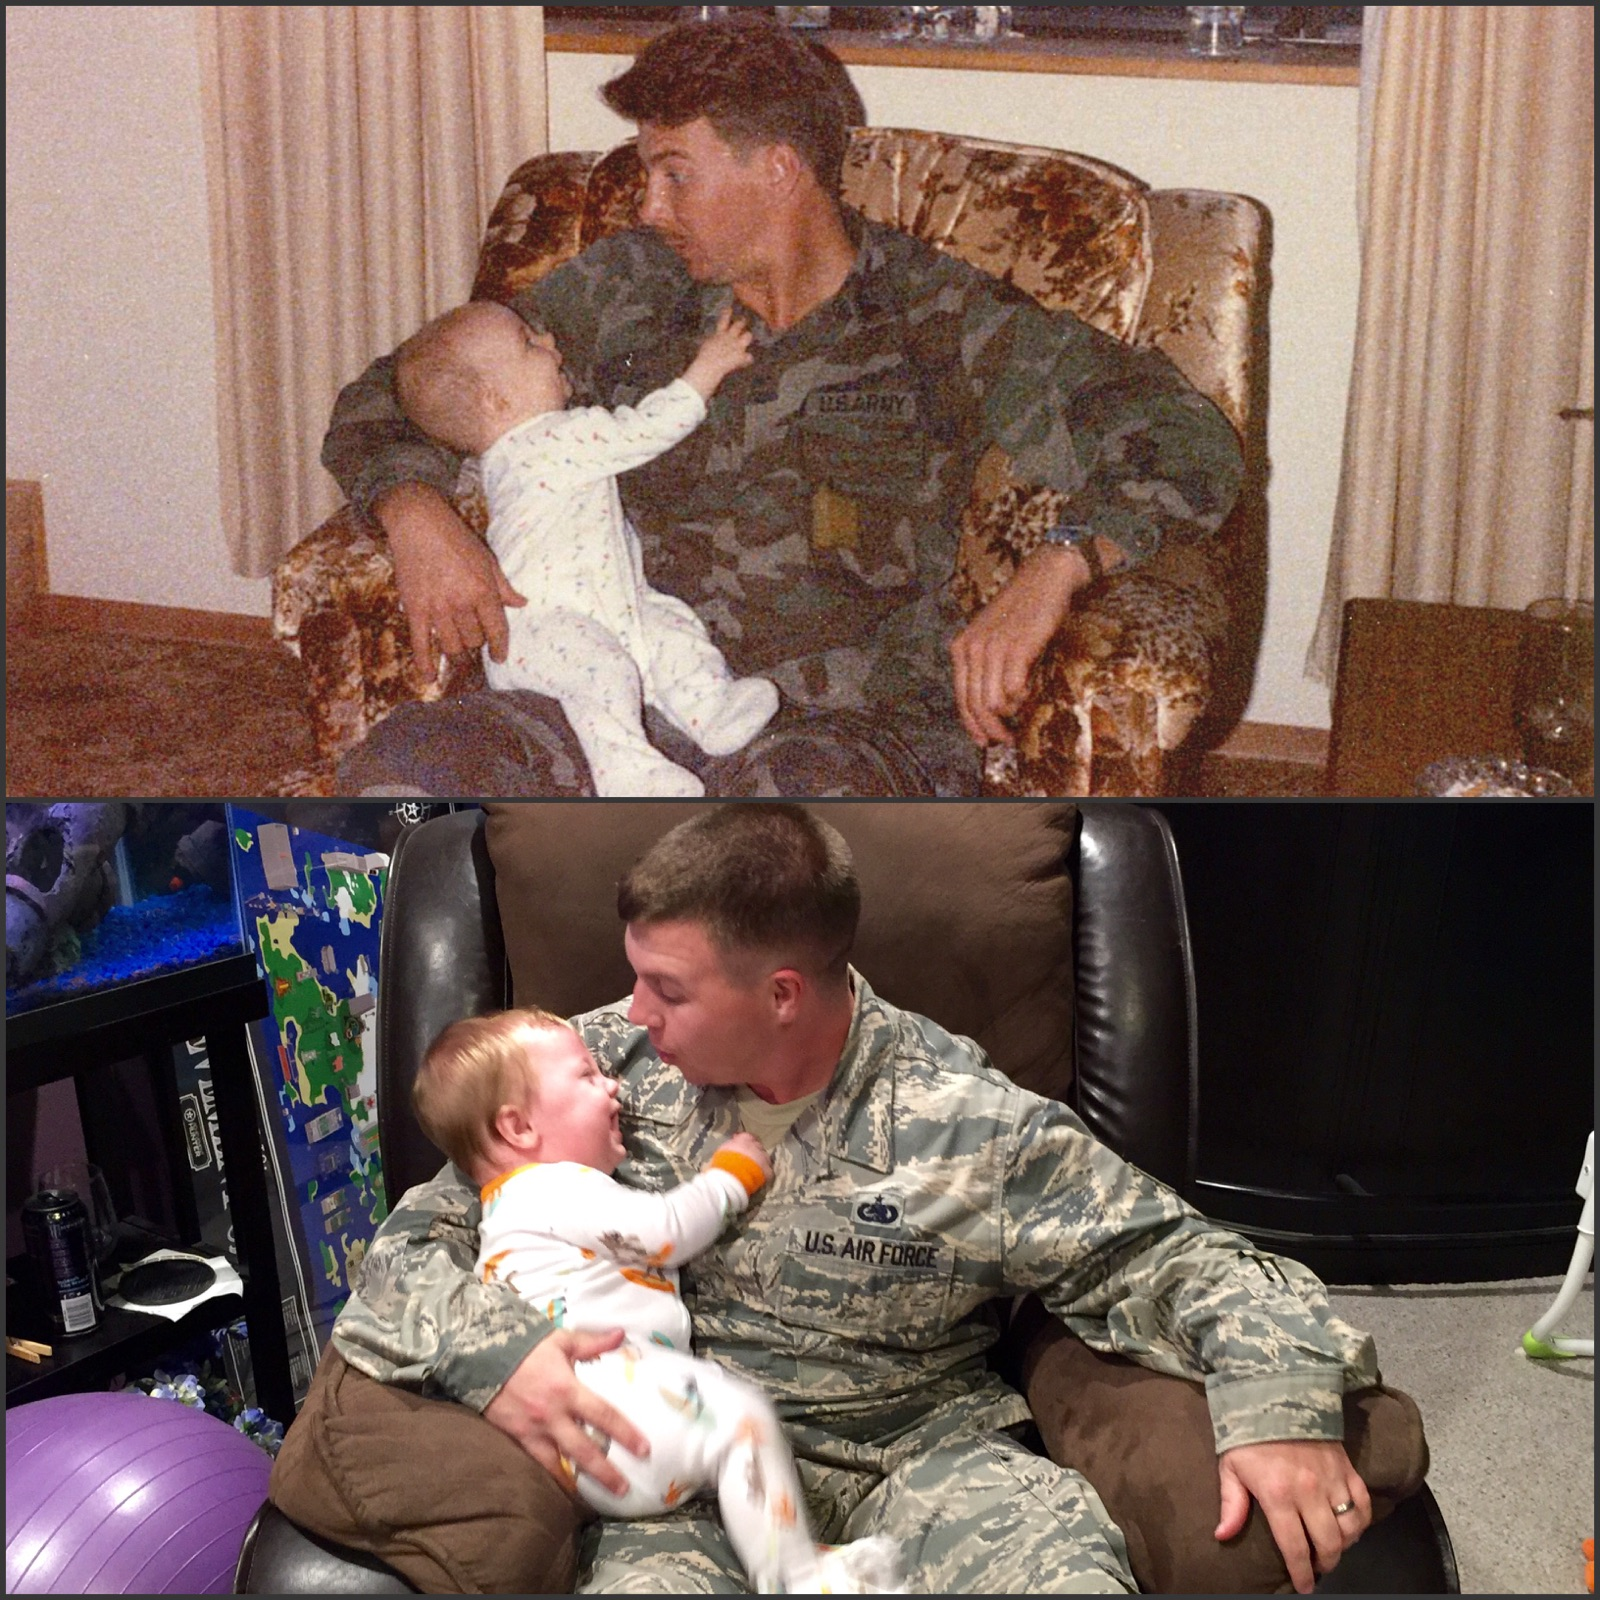 Military photo recreation with dad and son